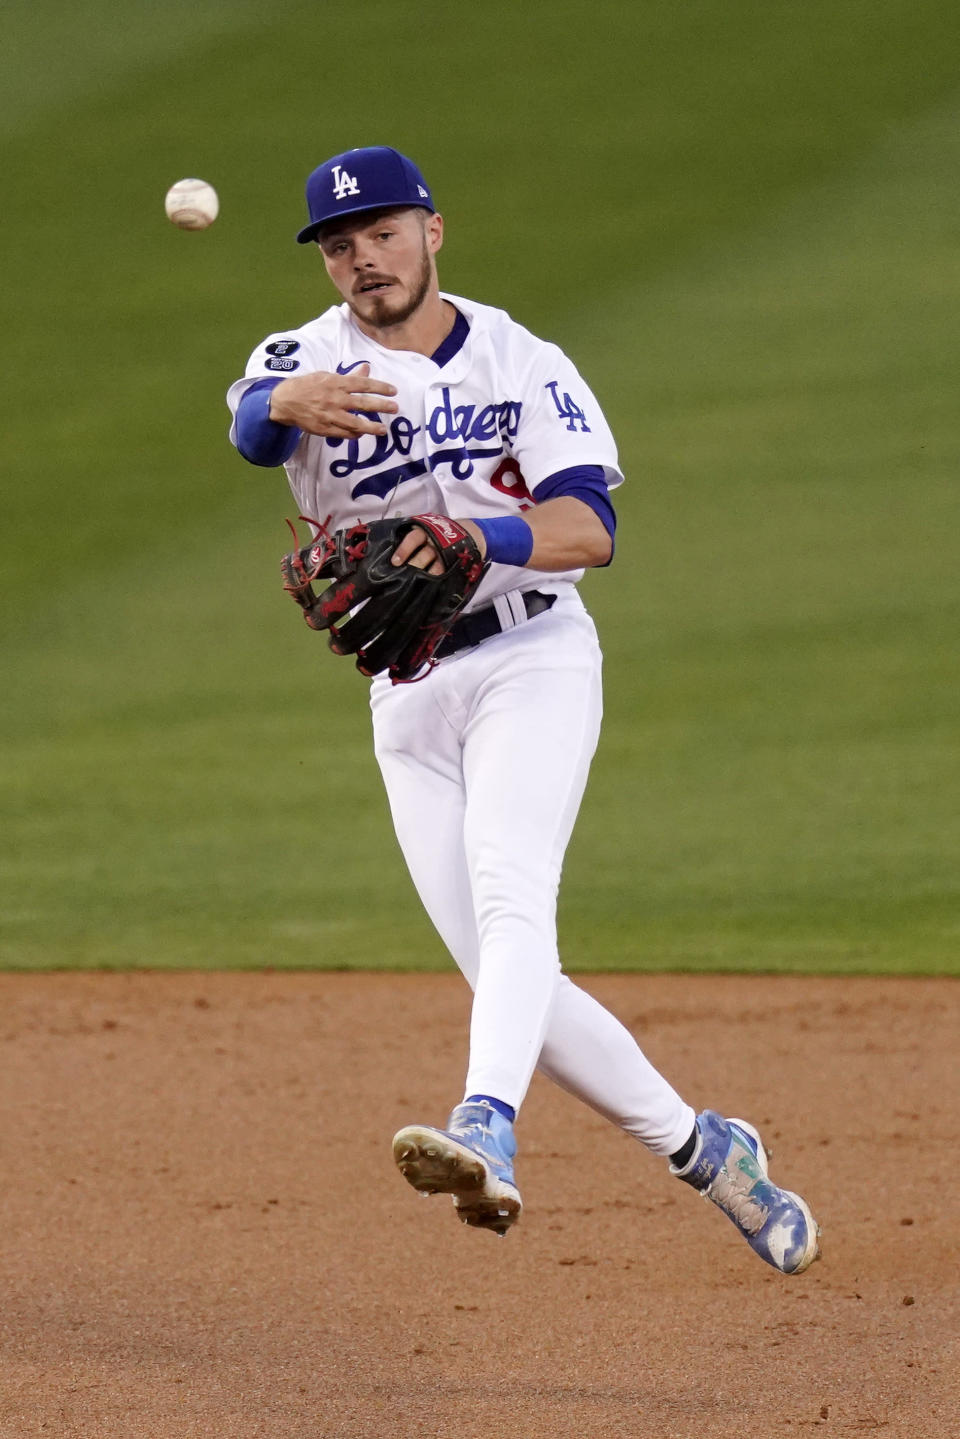 Los Angeles Dodgers second baseman Gavin Lux throws out Seattle Mariners' Dylan Moore at first during the second inning of an interleague baseball game Tuesday, May 11, 2021, in Los Angeles. (AP Photo/Mark J. Terrill)